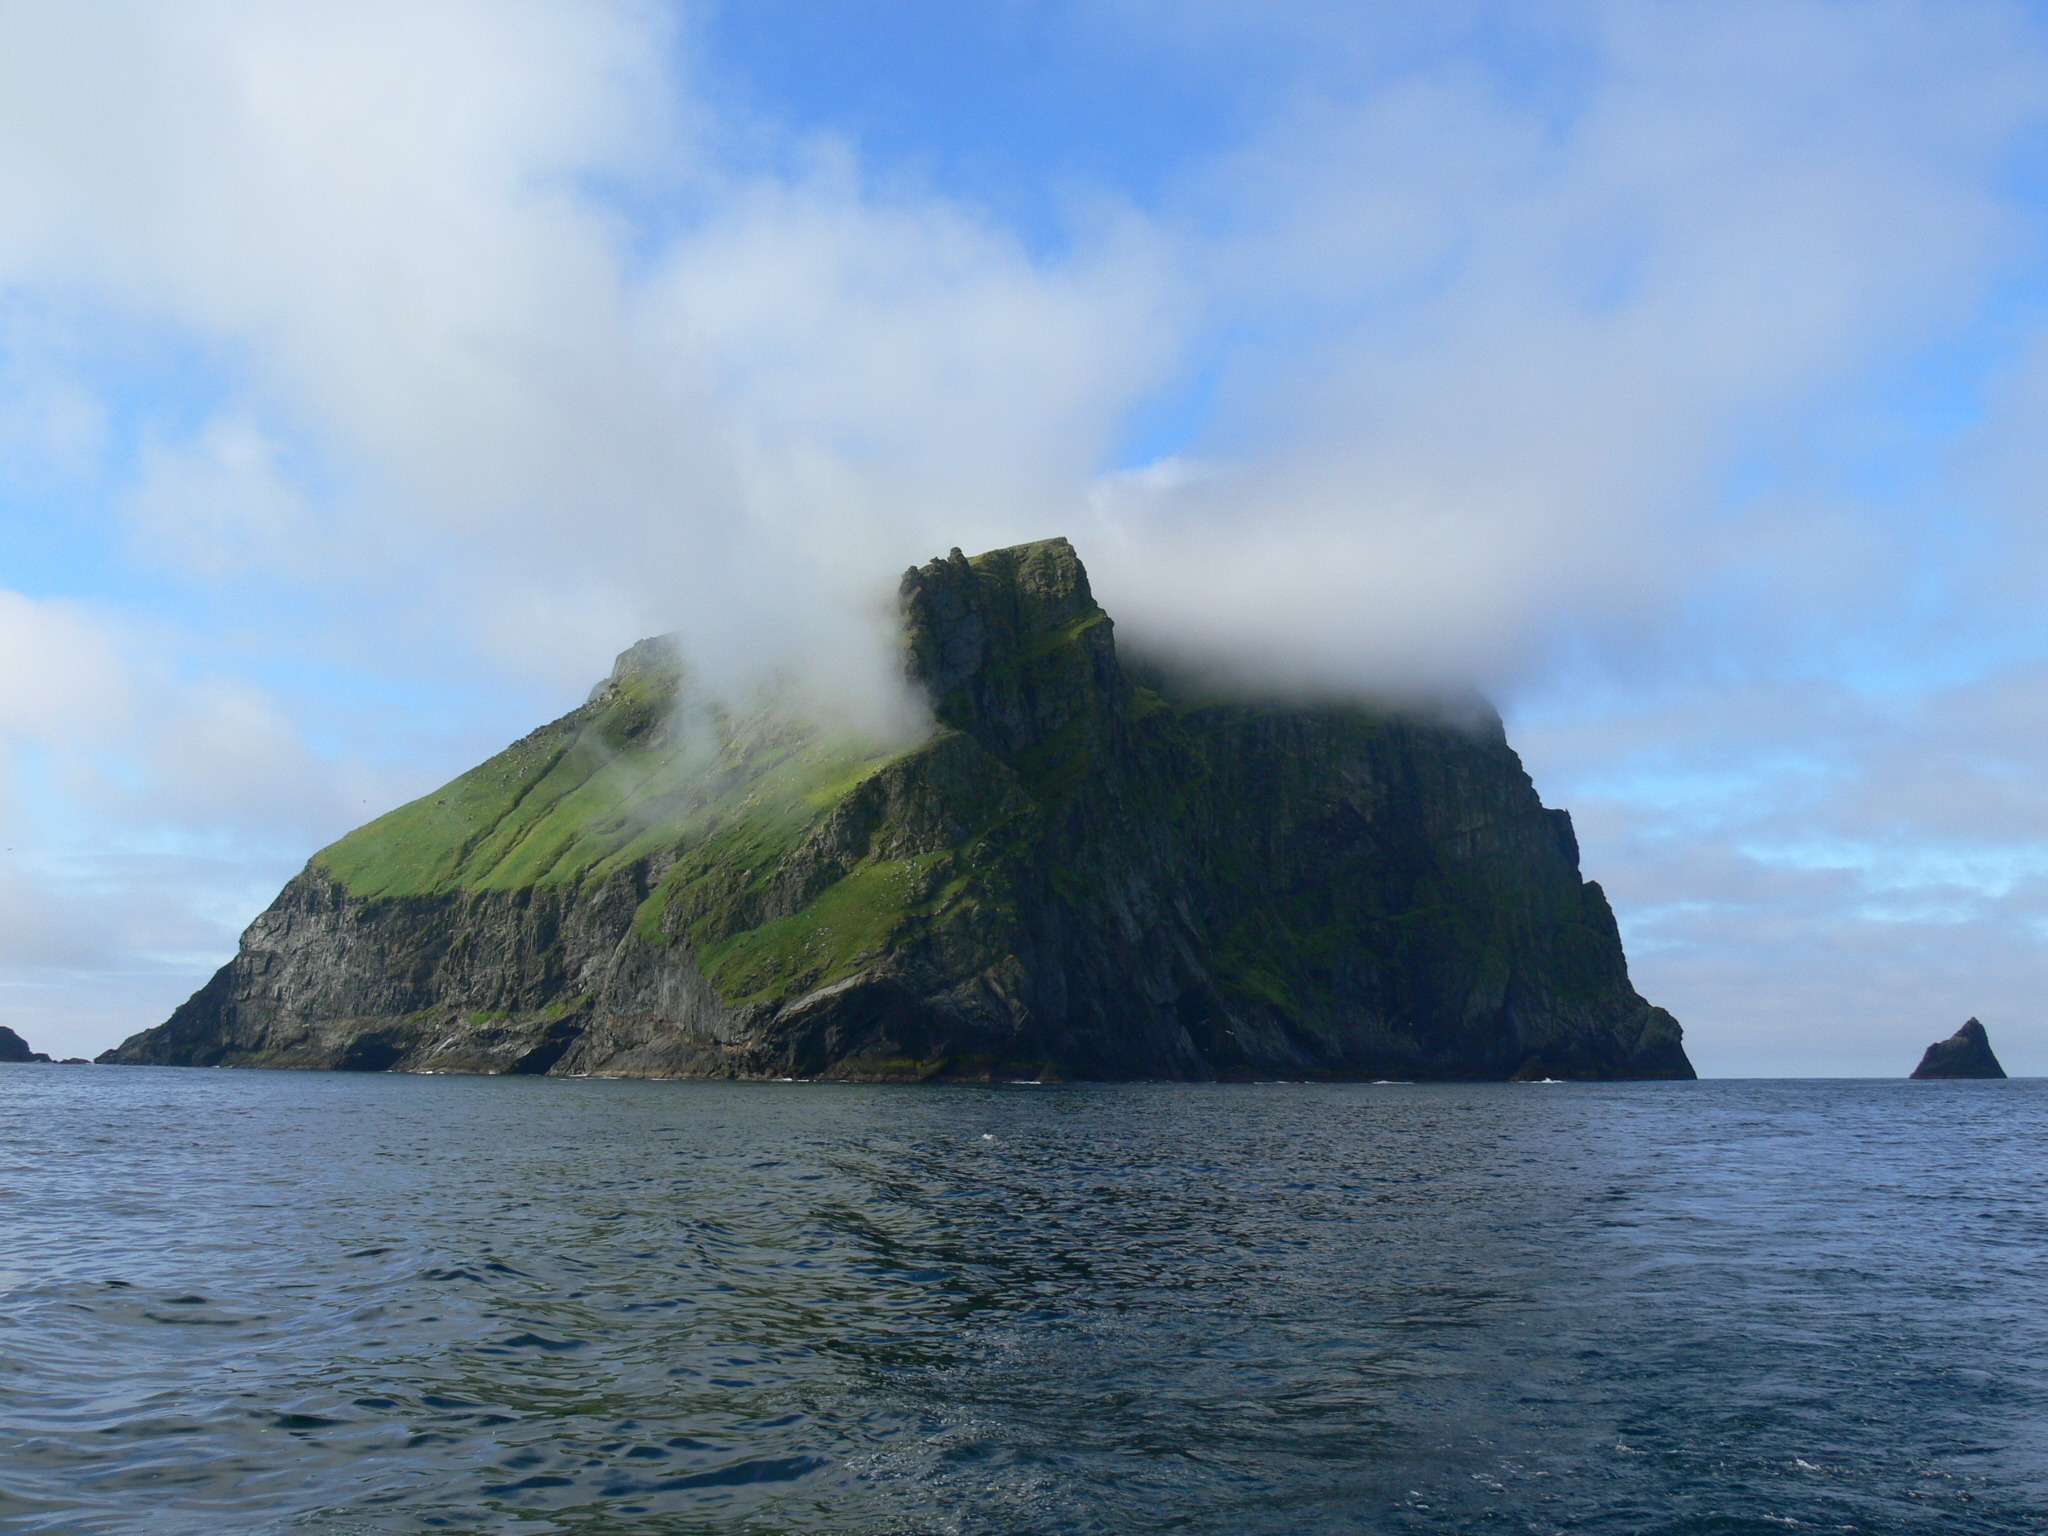 A small rocky island formed from the tip of an ancient mountain rises from the North Sea. Its sides are steep and its top is wreathed in mist. There's a carpet of grass, but no shelter to be seen.